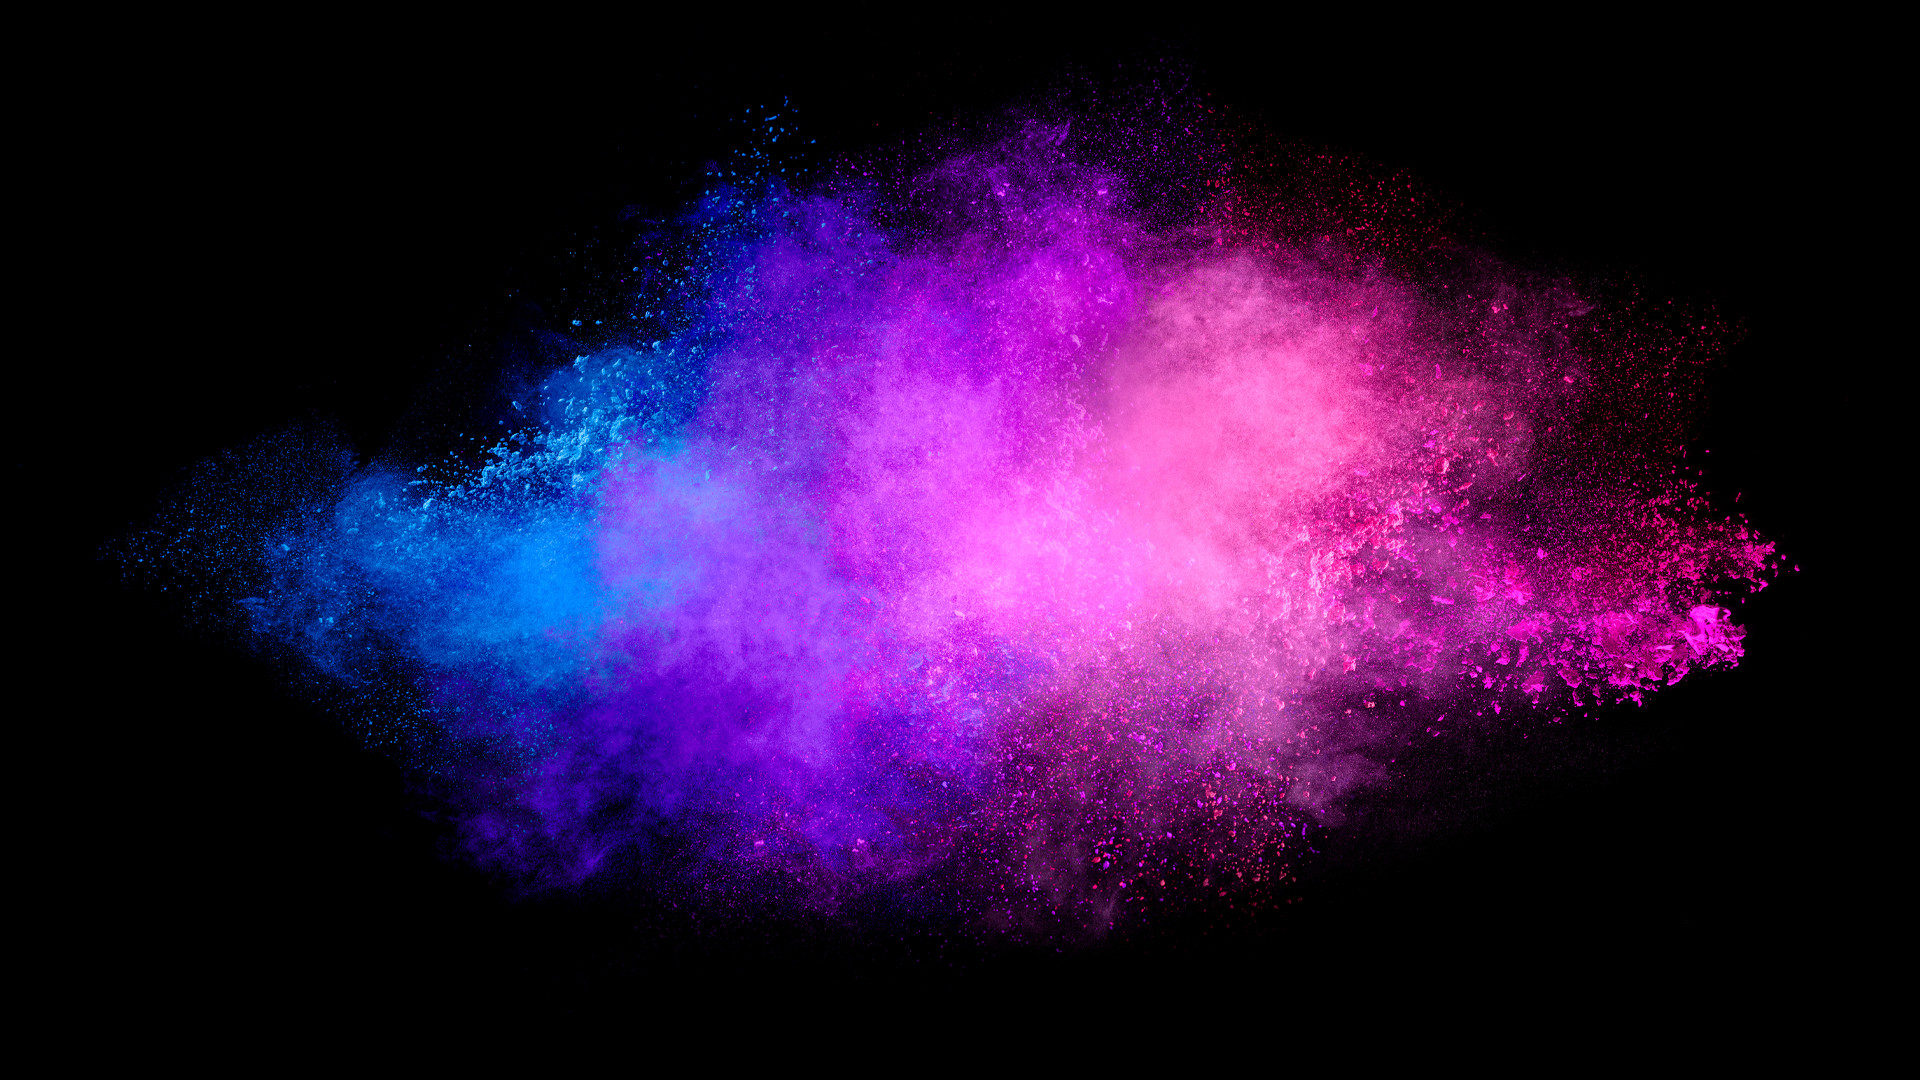 Pink and blue powder cloud colour burst abstract background